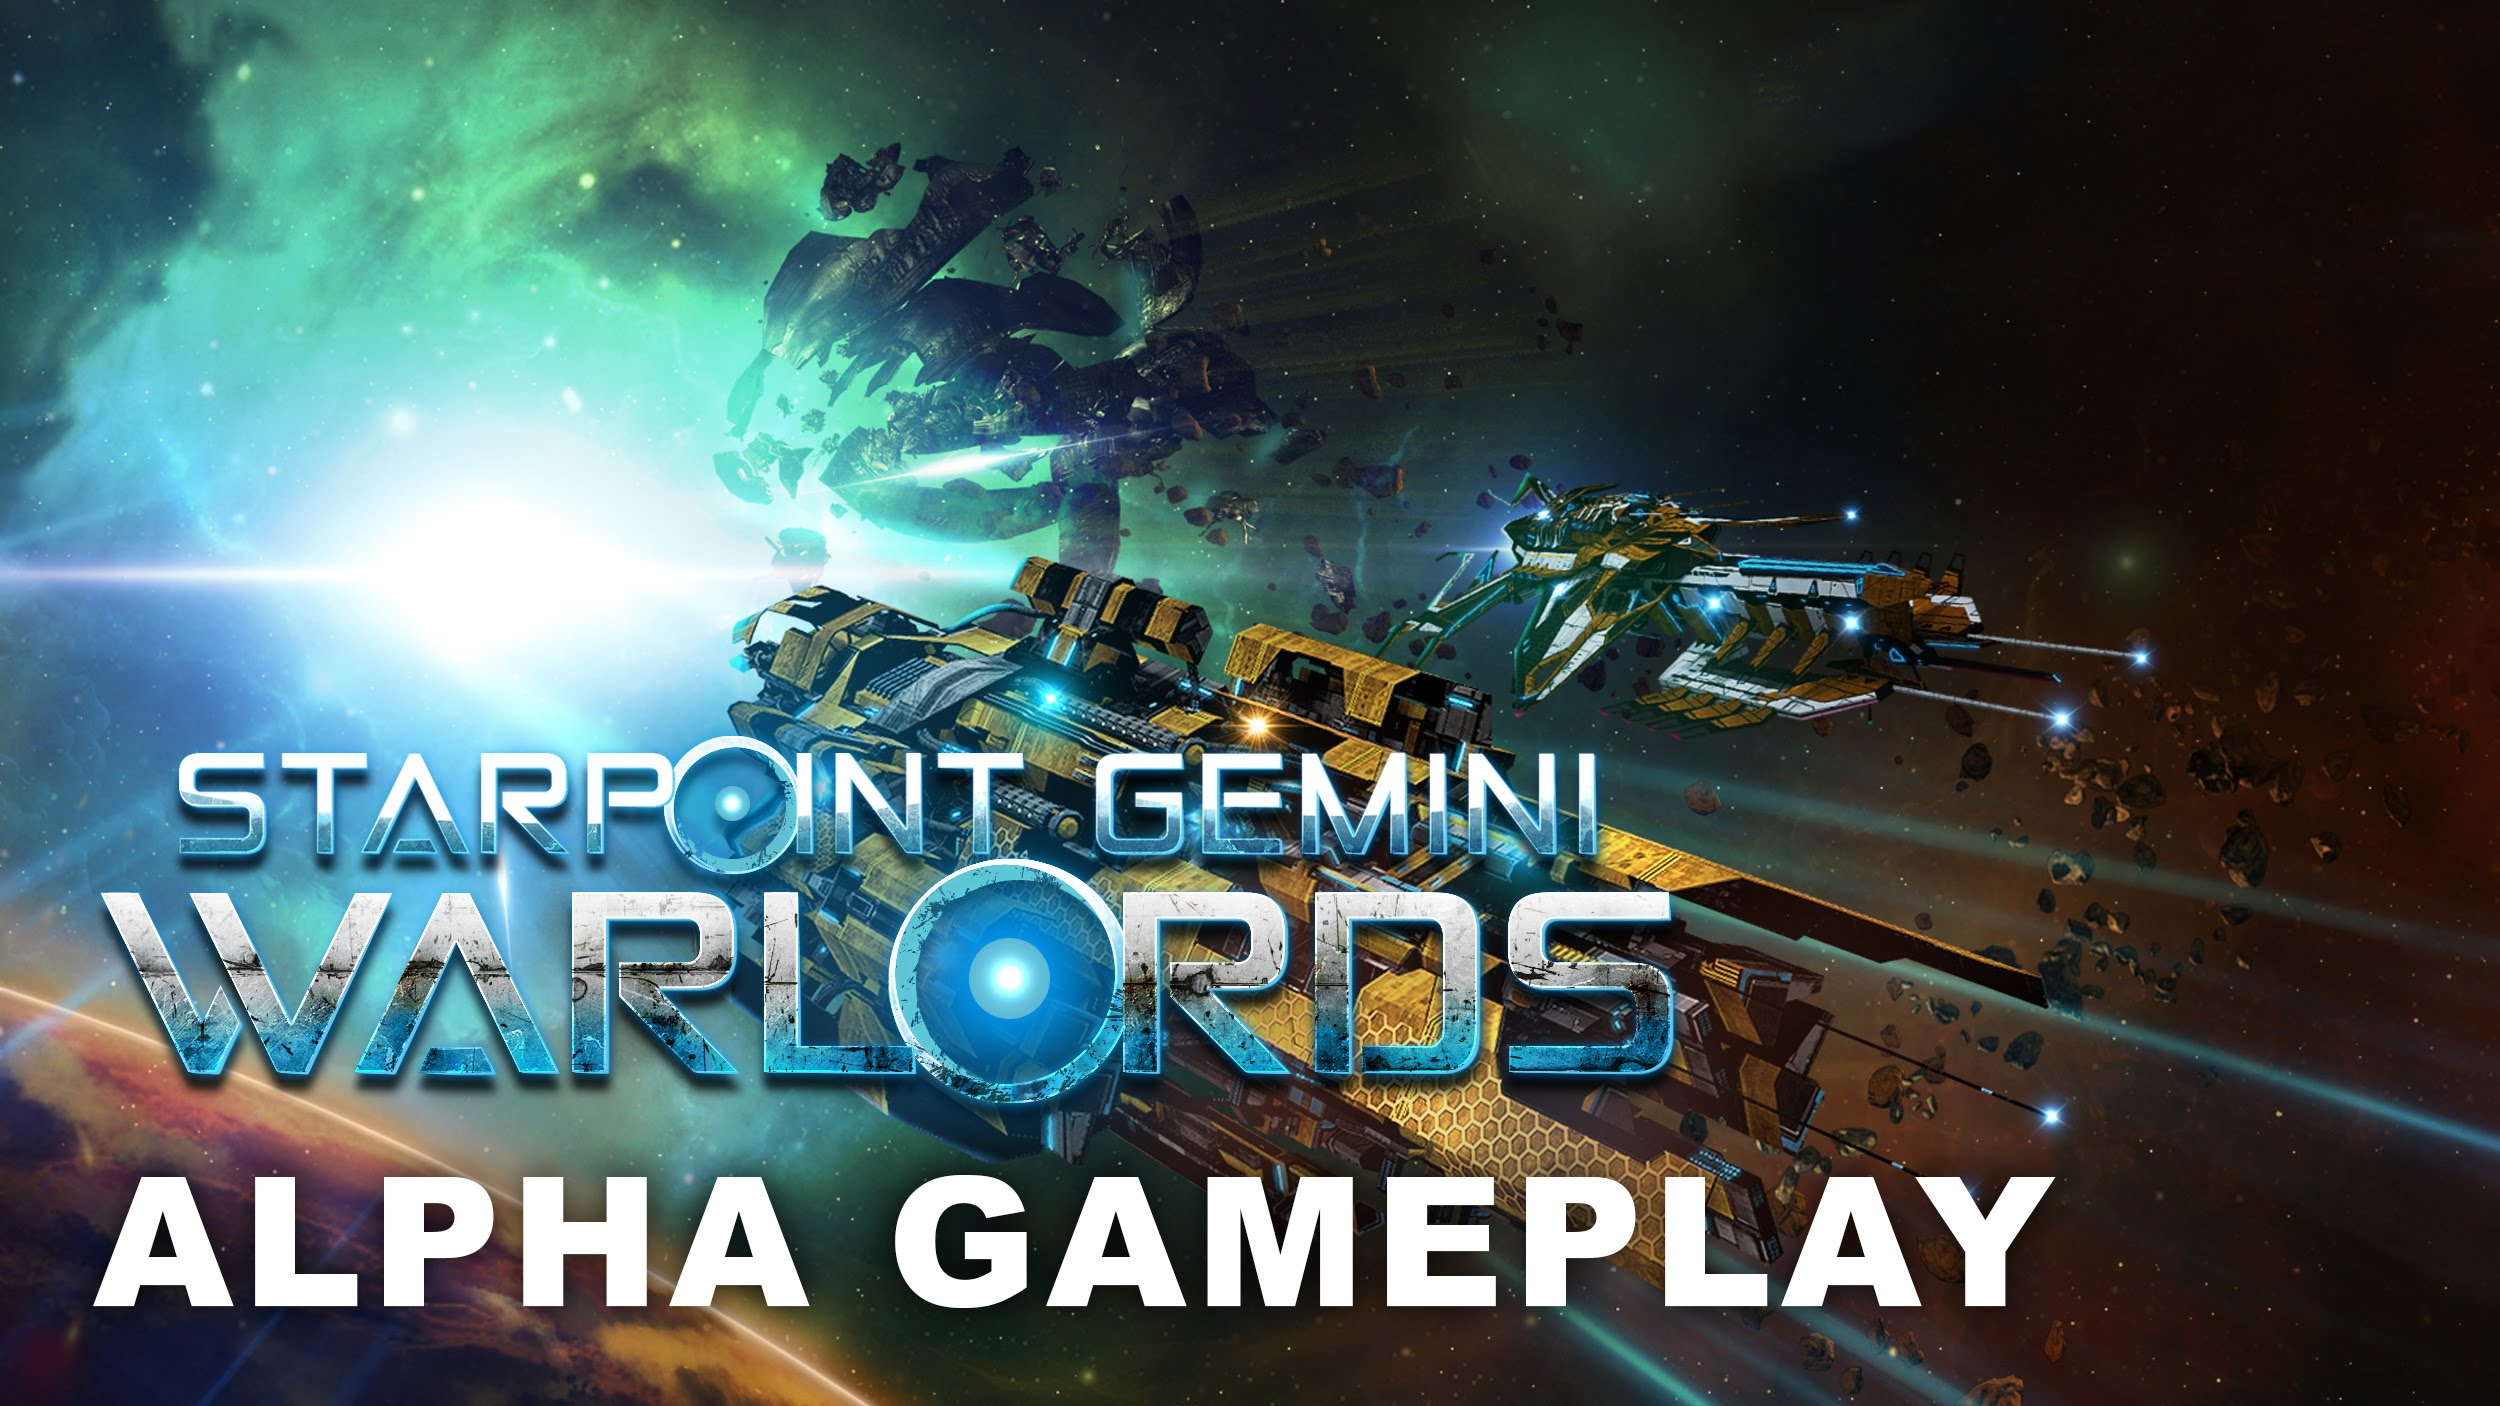 Starpoint Gemini: Warlords - Alpha Gameplay Video